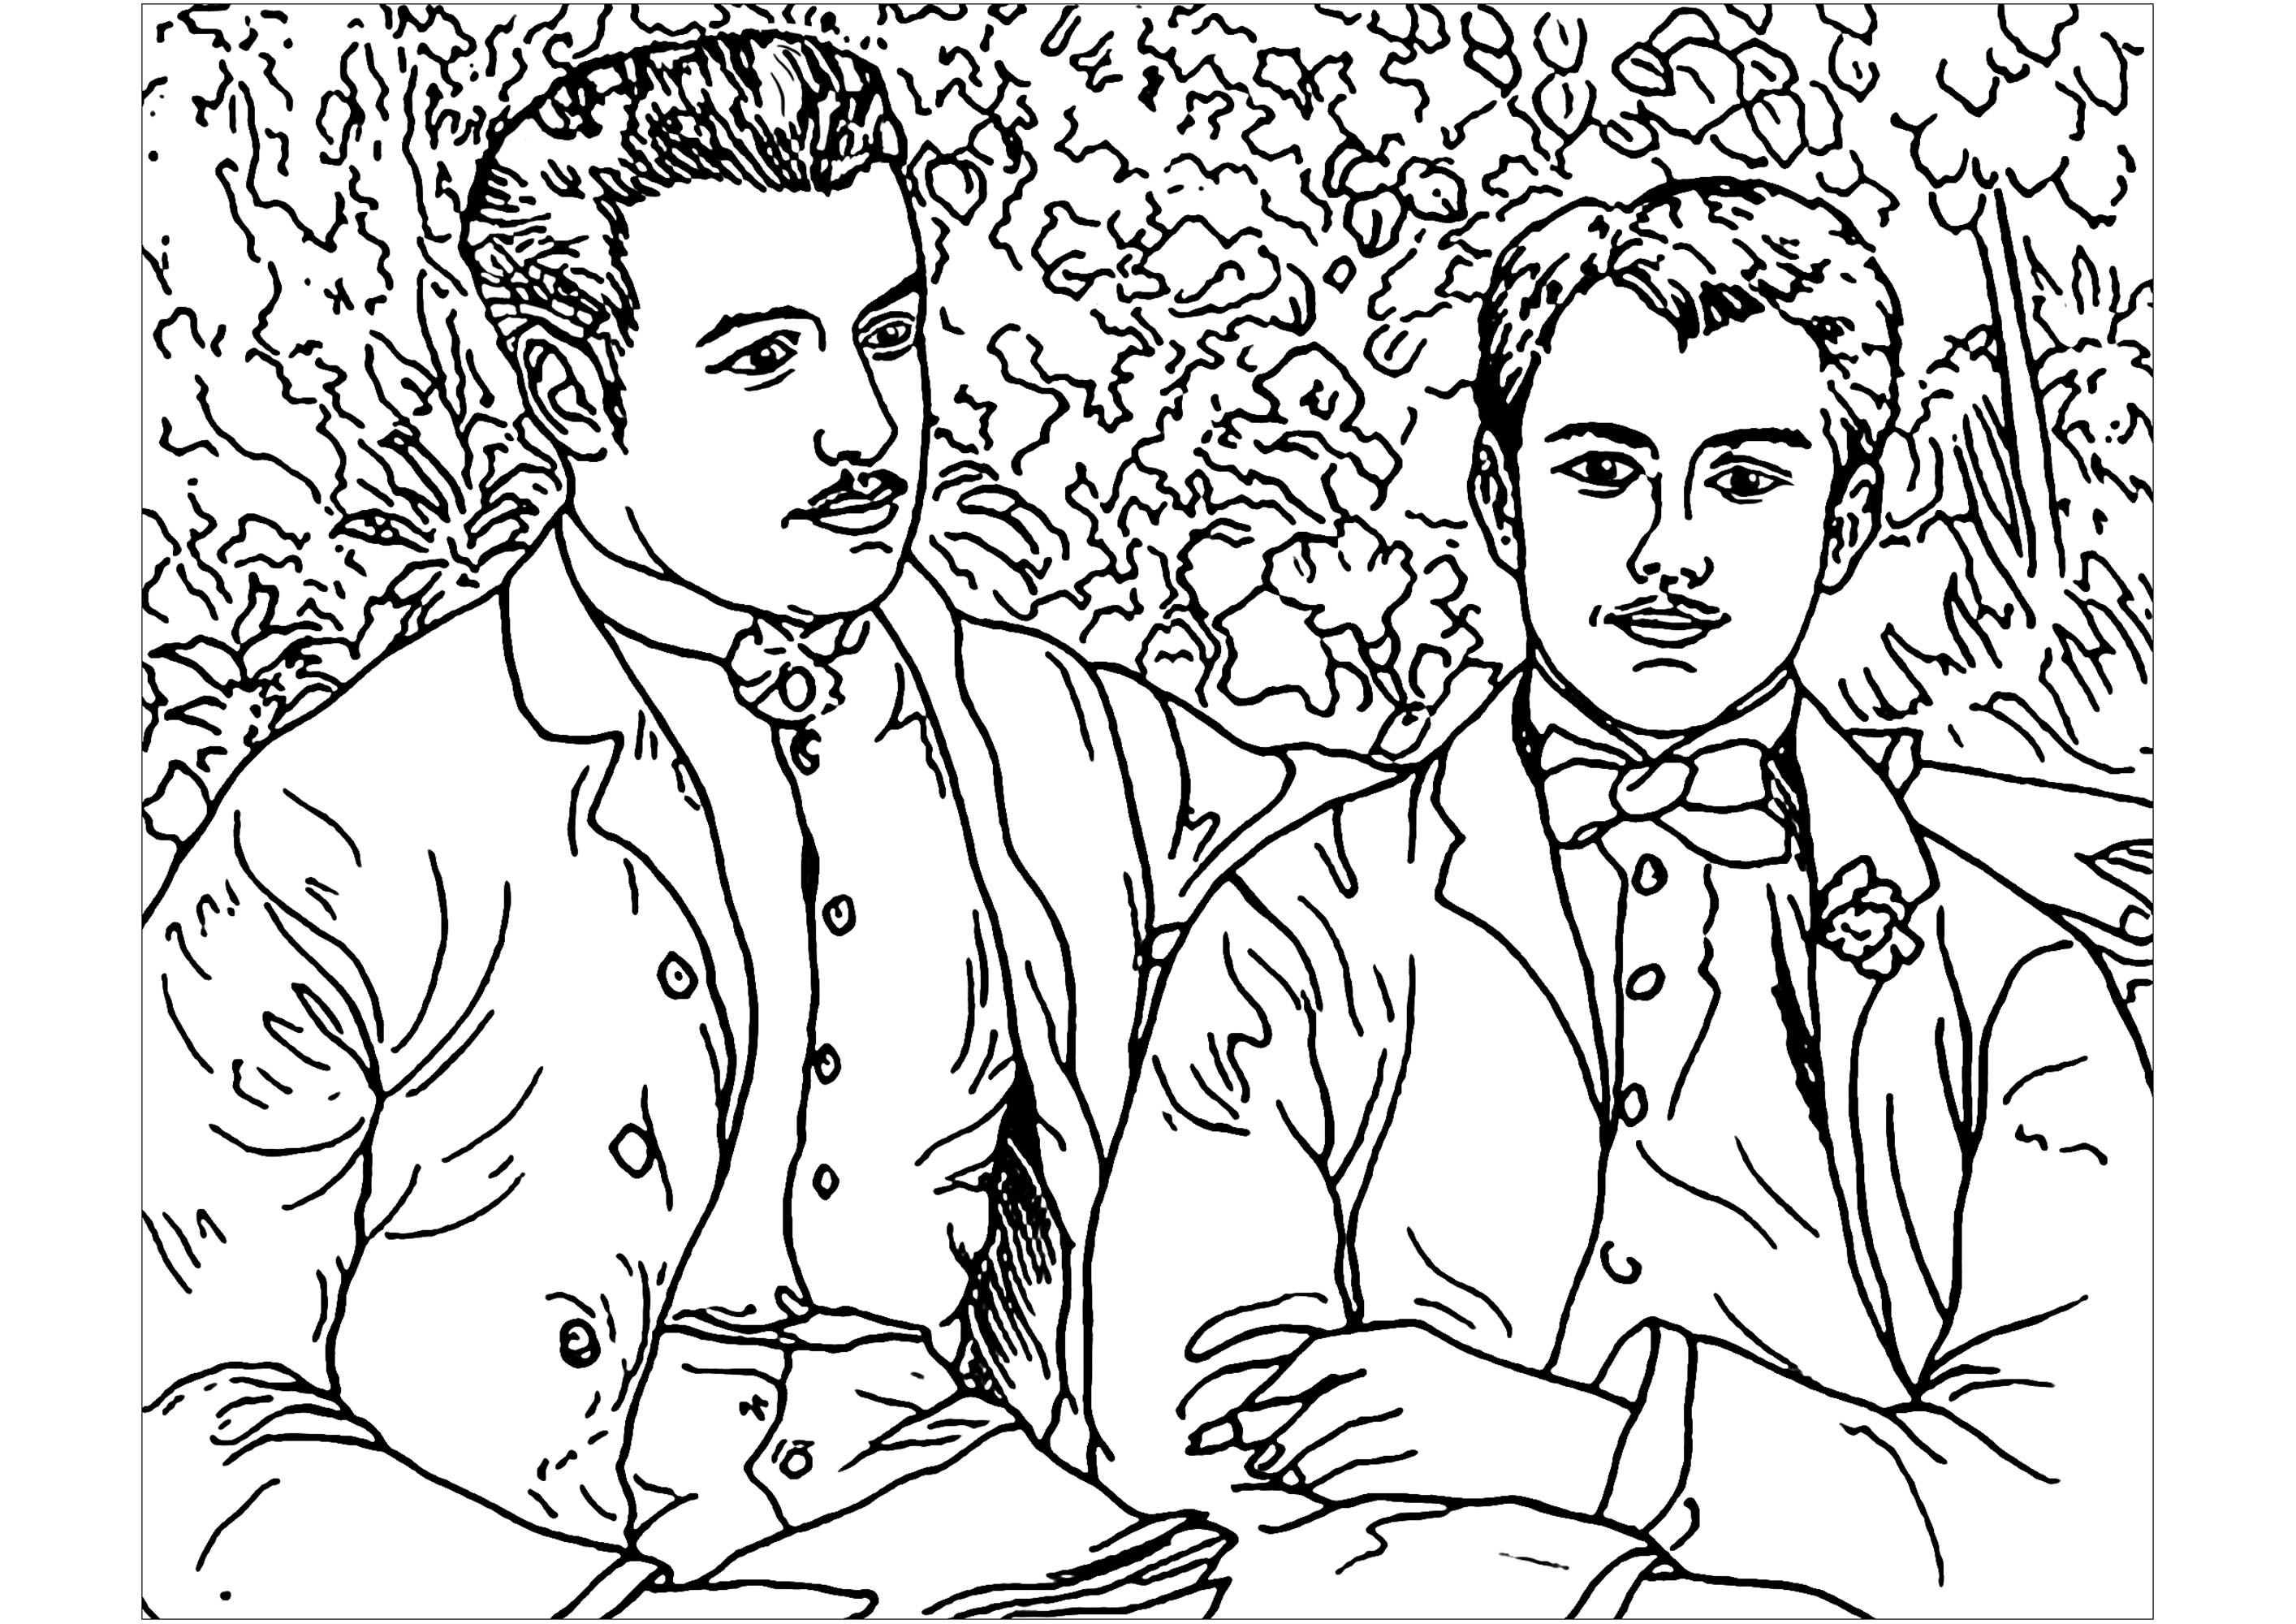 claude monet coloring pages claude monet coloring pages at getdrawings free download pages coloring monet claude